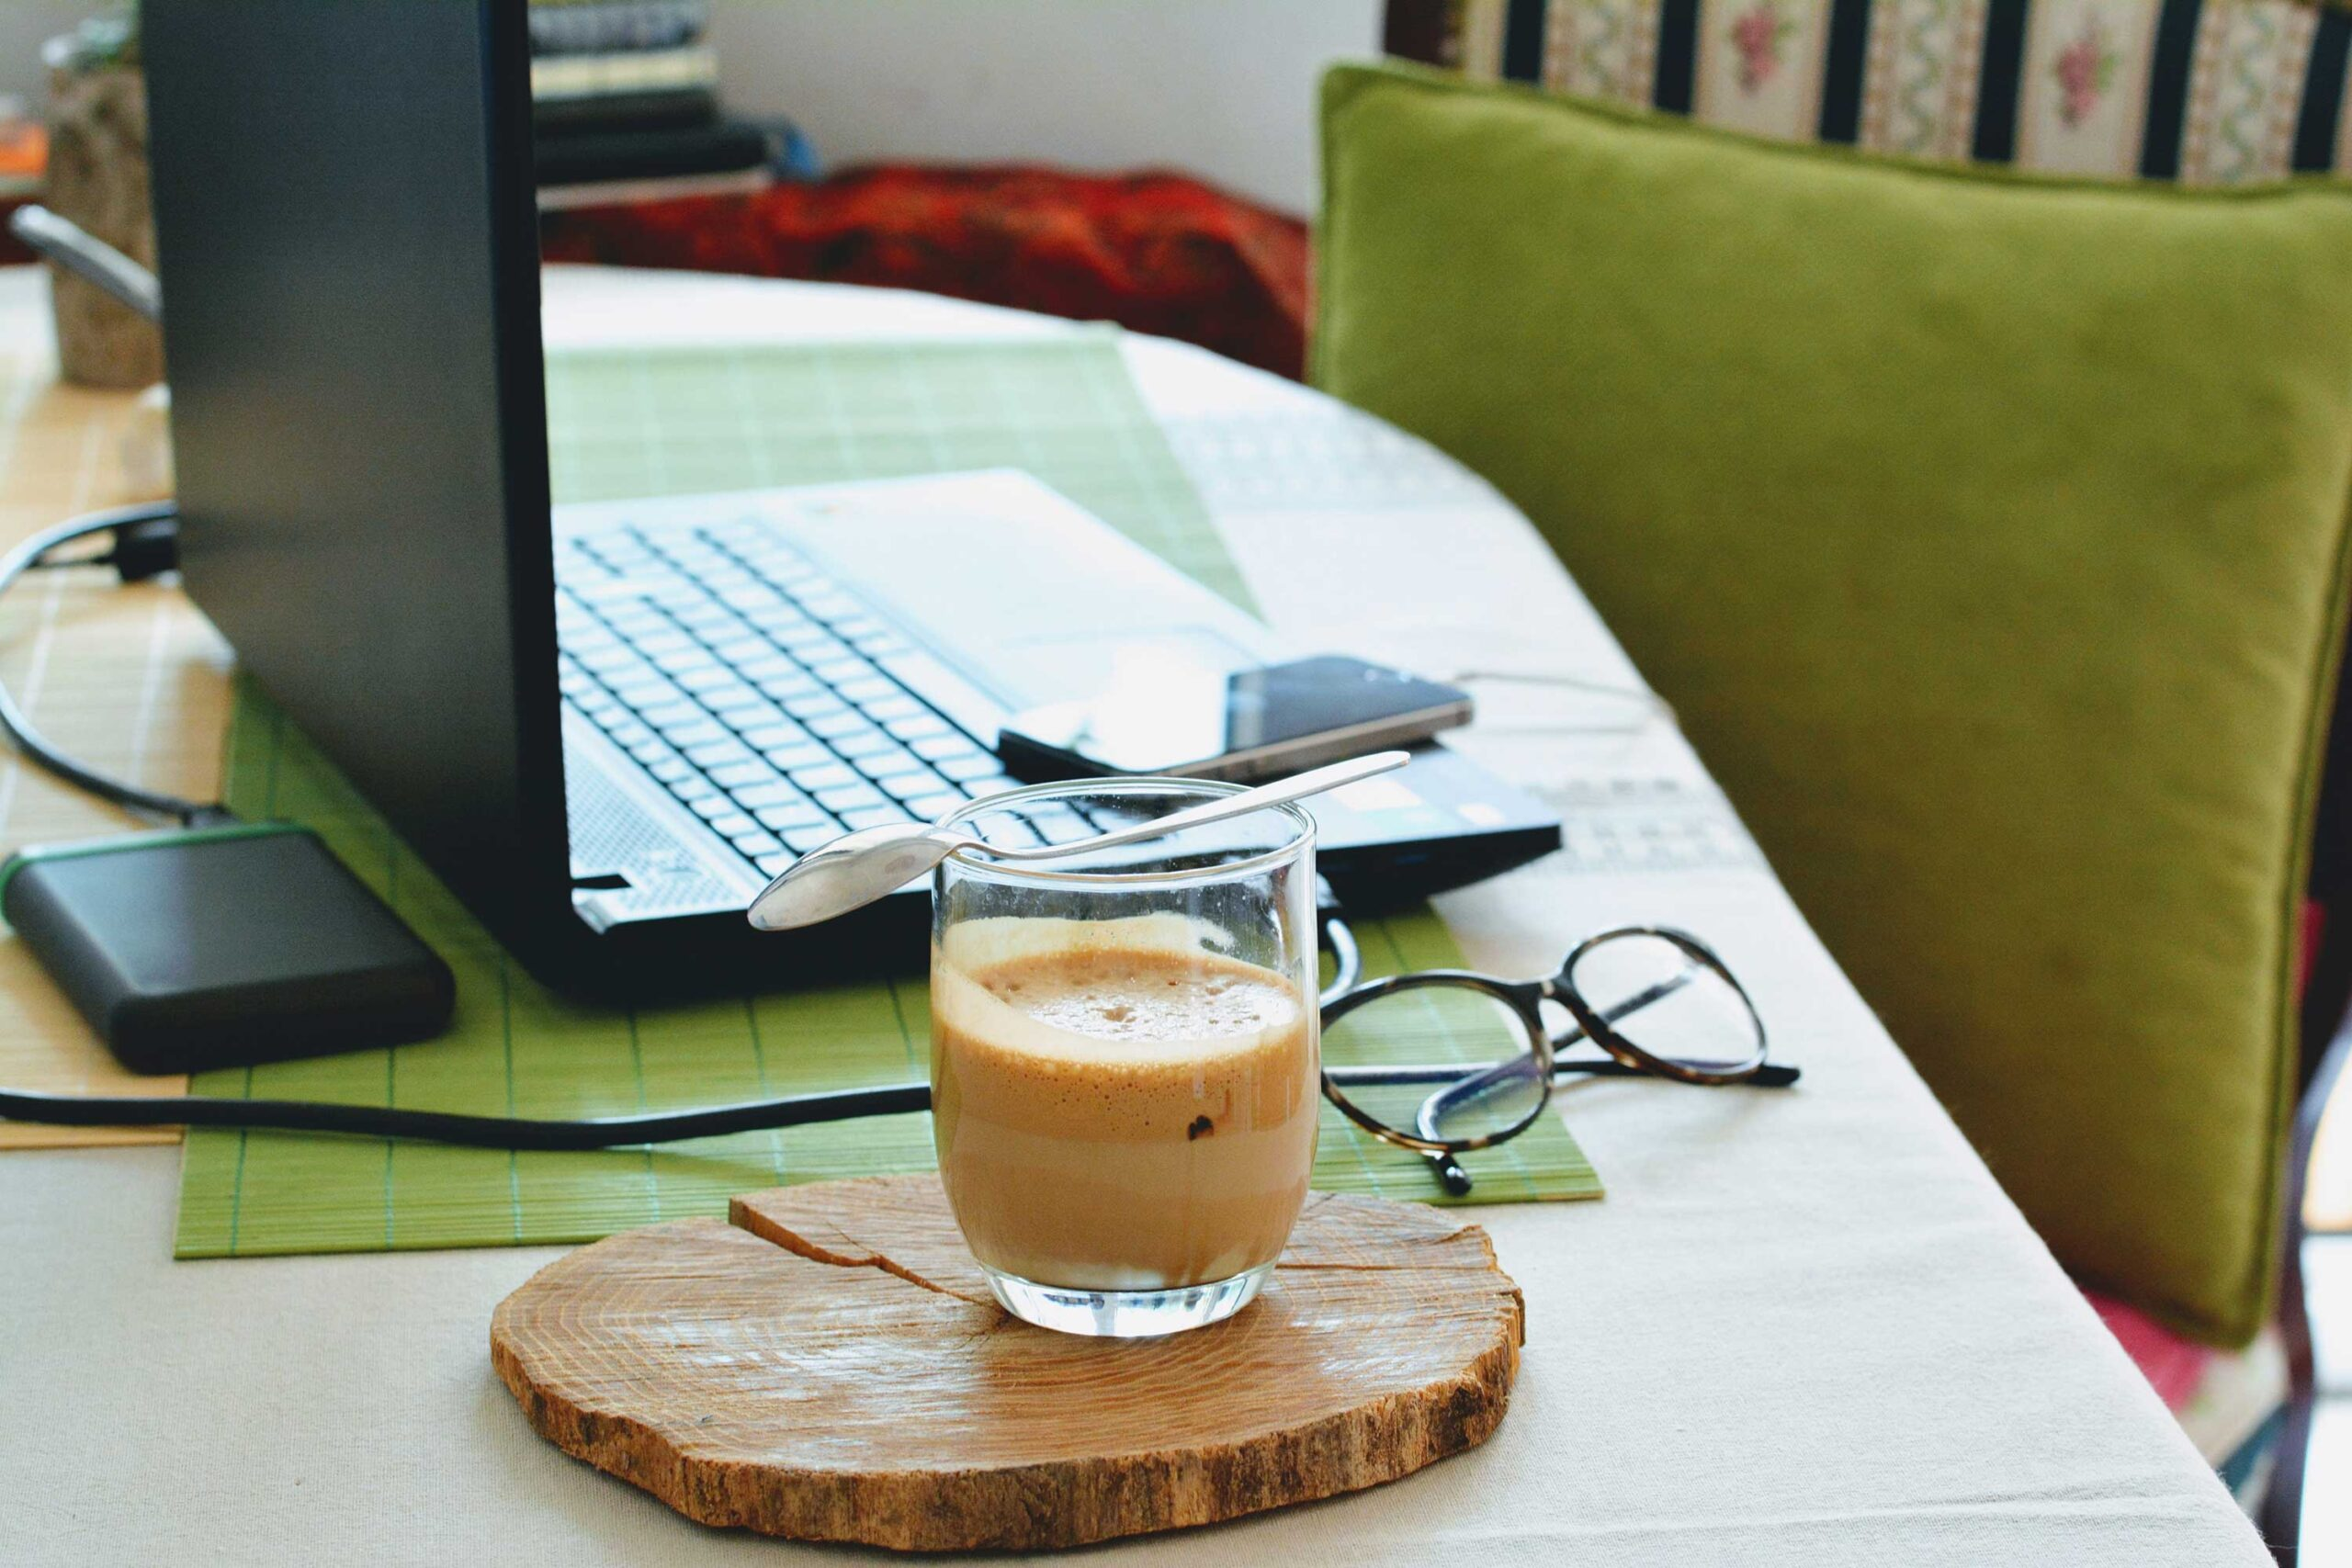 Practical tips for effectively working at home